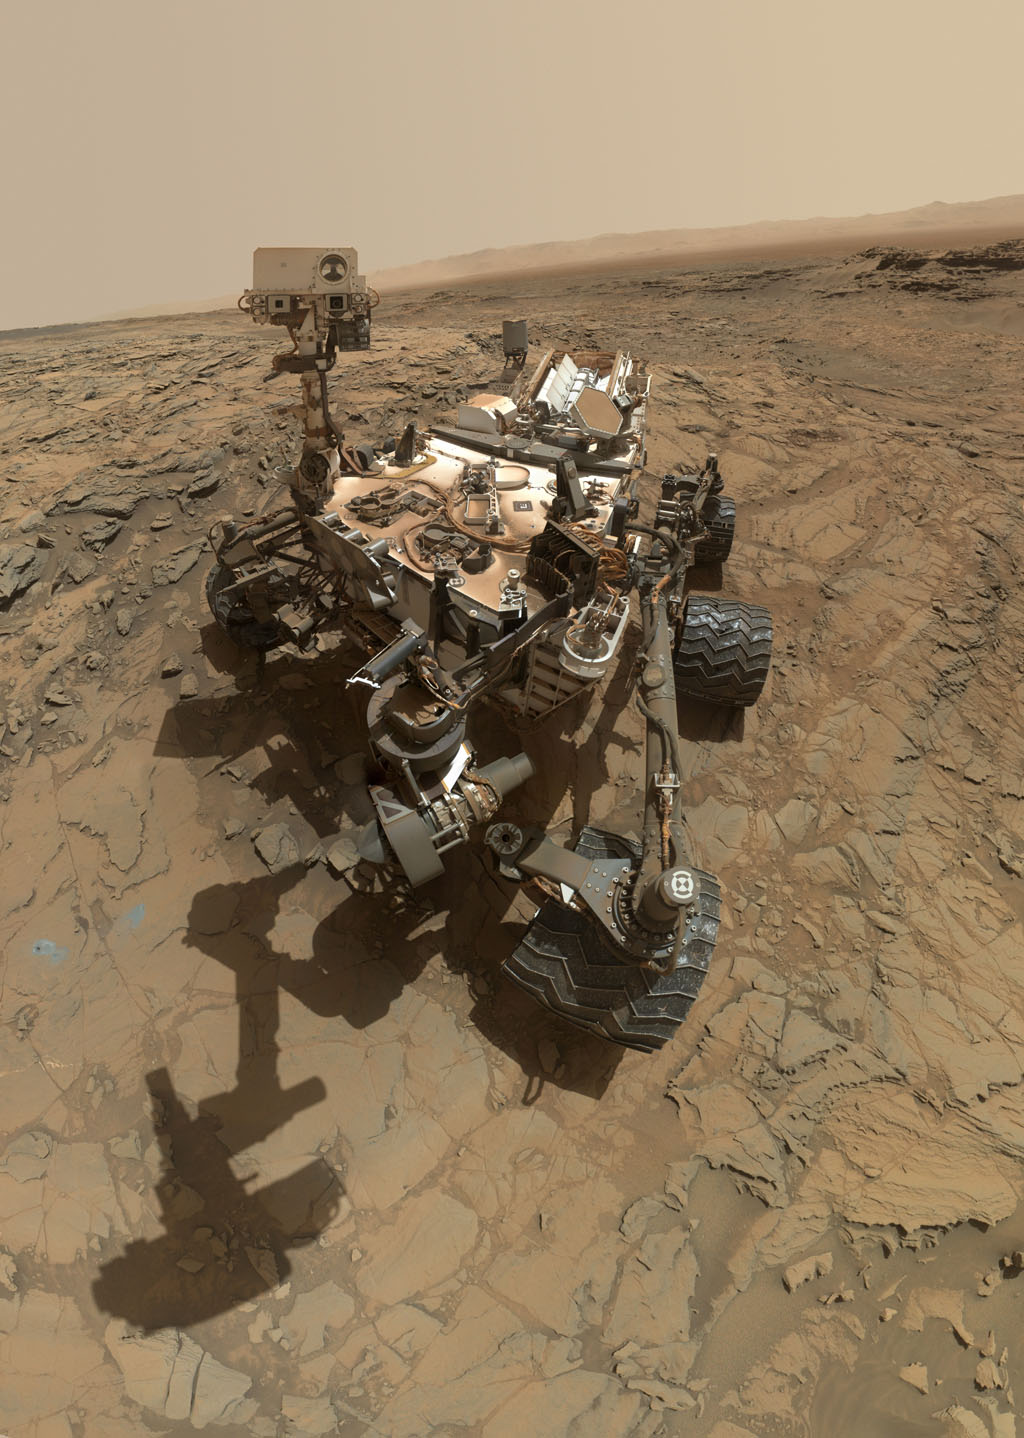 Space Images | Curiosity Self-Portrait at 'Big Sky' Drilling Site